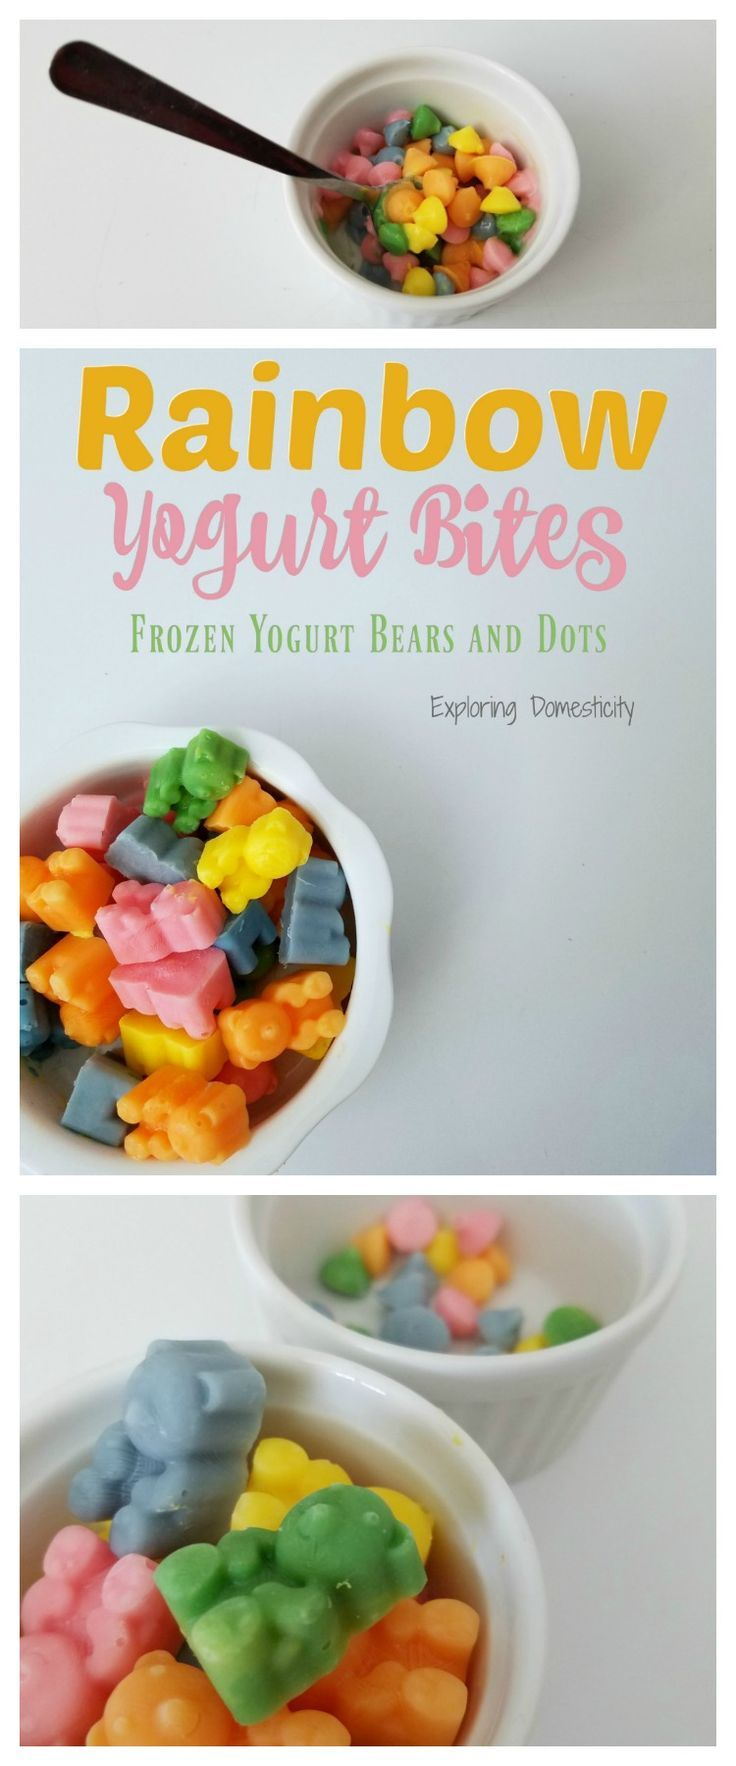 Rainbow Yogurt Bites are such a fun and colorful treat. Kids don't have to know that parents love to give them this healthy snack!  Easily make these frozen yogurt bears and dots for snacks, treats, or lunches! Kiddos will love the fun colors and how they swirl together. Parents love ...